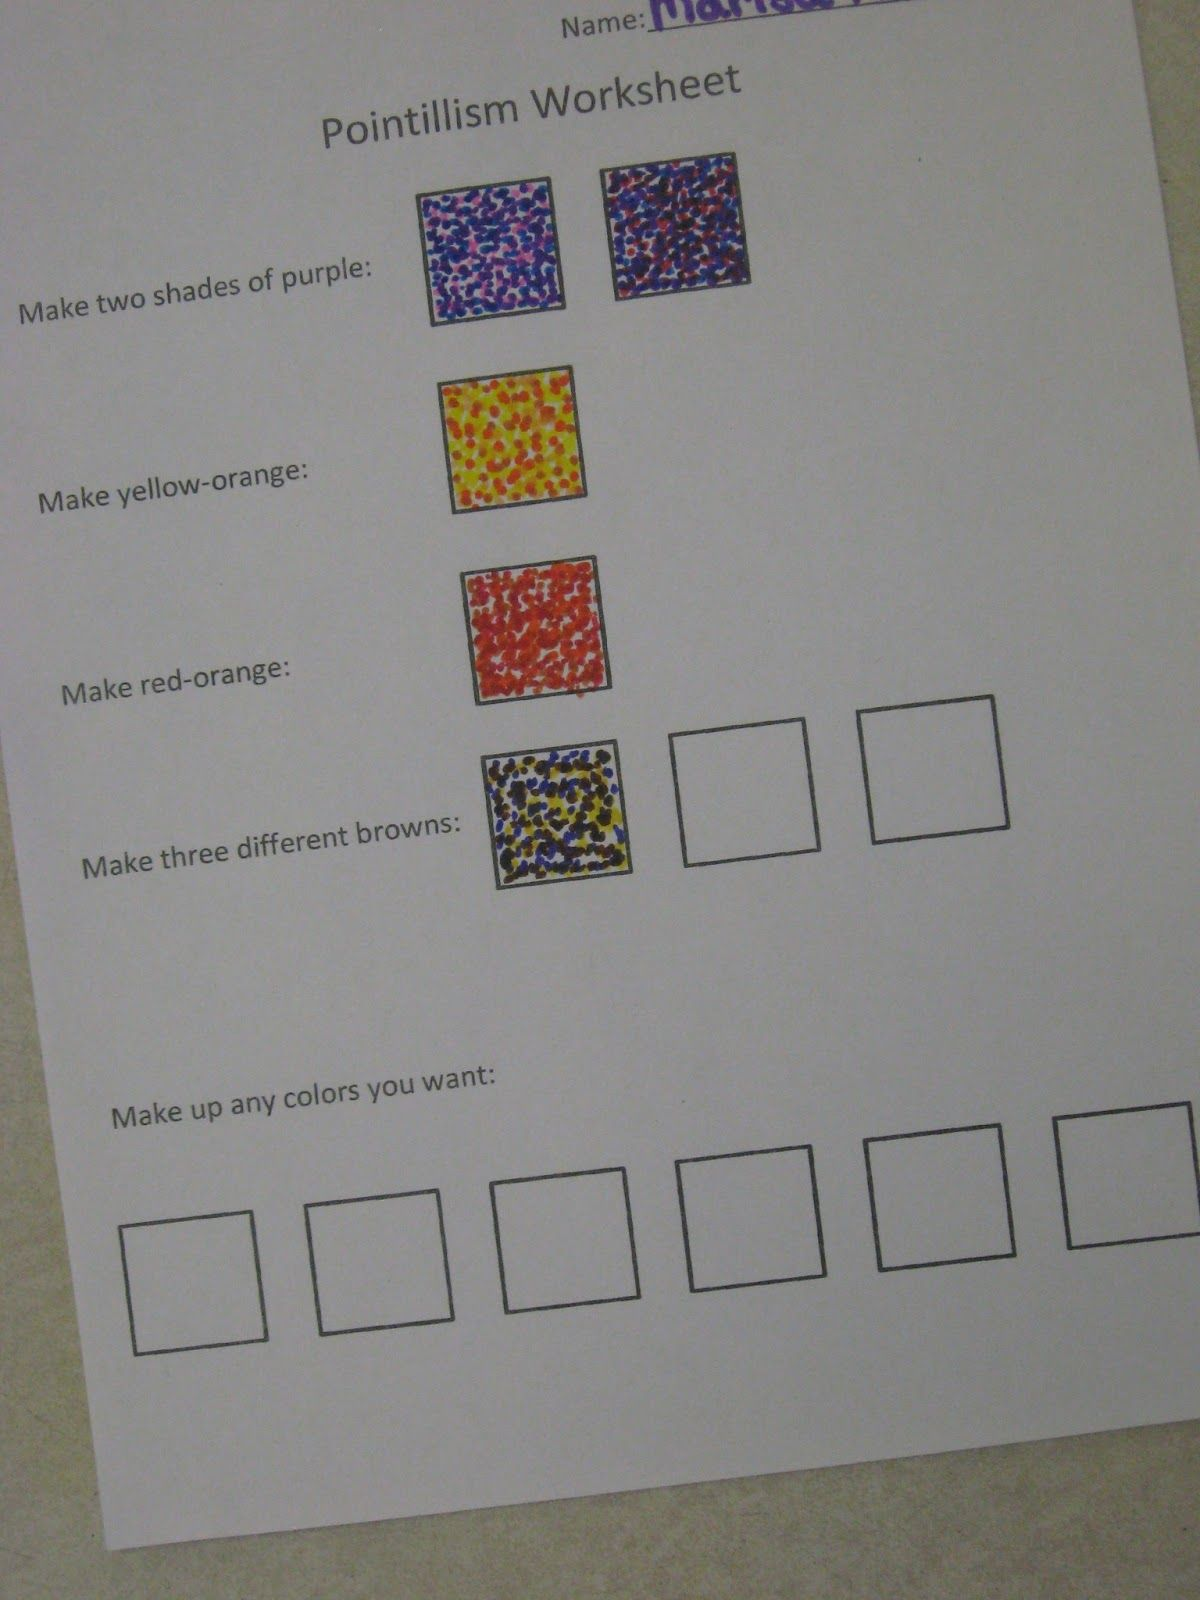 I Love Teaching About Pointillism There Is So Much Color